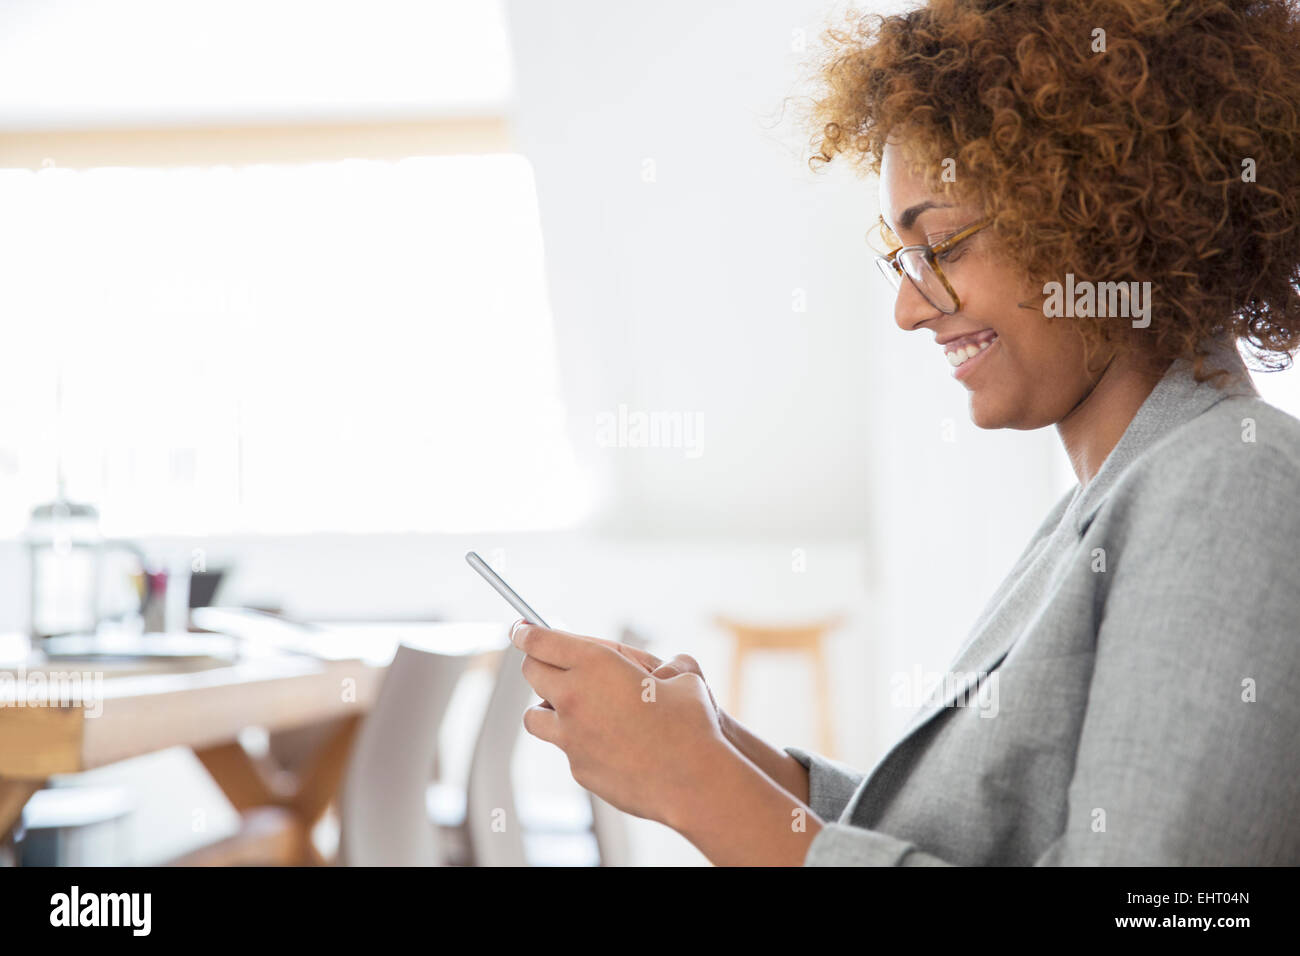 Portrait of woman using smart phone and smiling - Stock Image